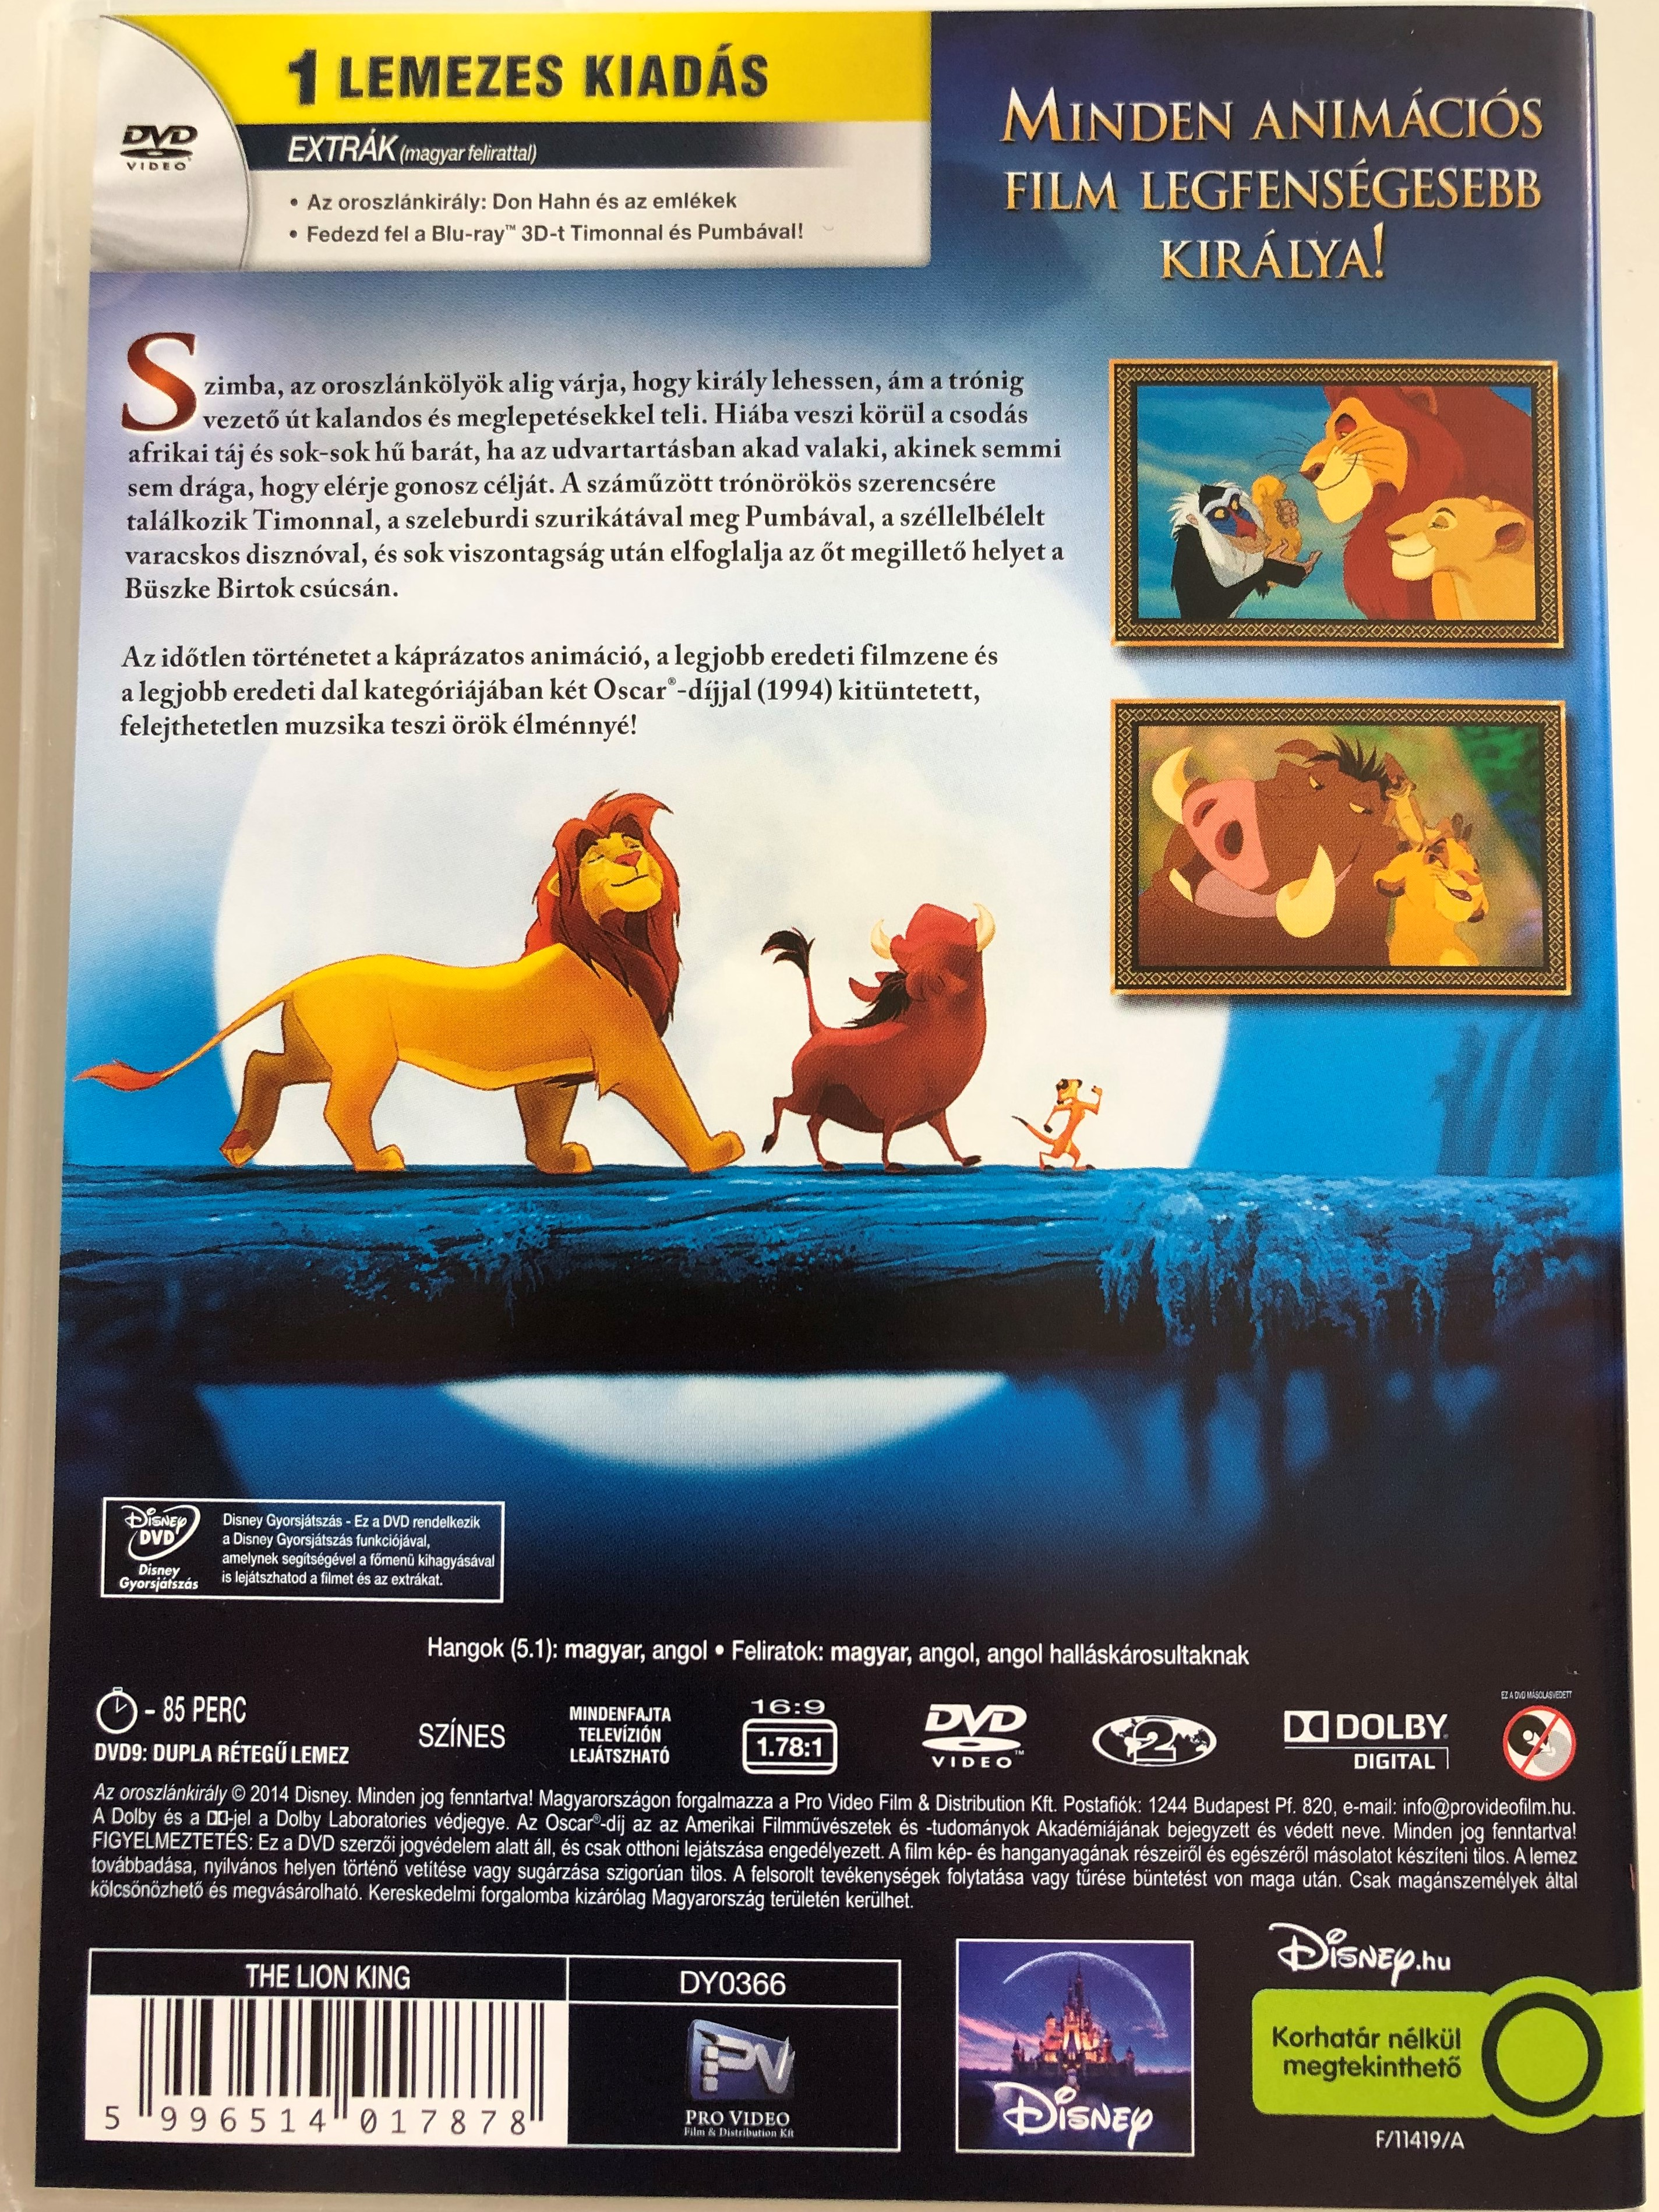 the-lion-king-dvd-1994-az-oroszl-nkir-ly-directed-by-roger-allers-rob-minkoff-2-.jpg